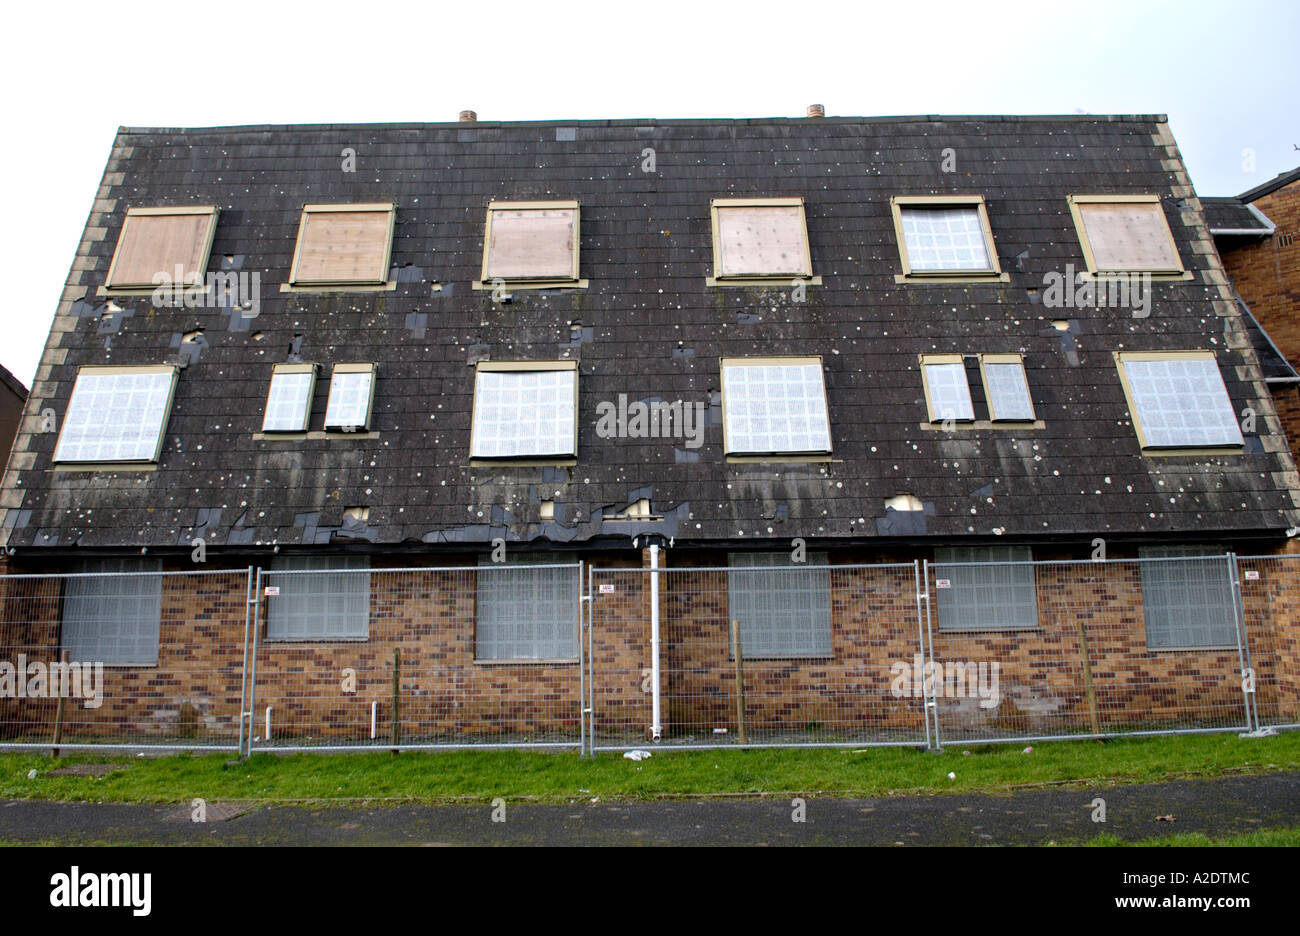 Houses derelict and boarded up in Llanelli Carmarthenshire West Wales UK - Stock Image